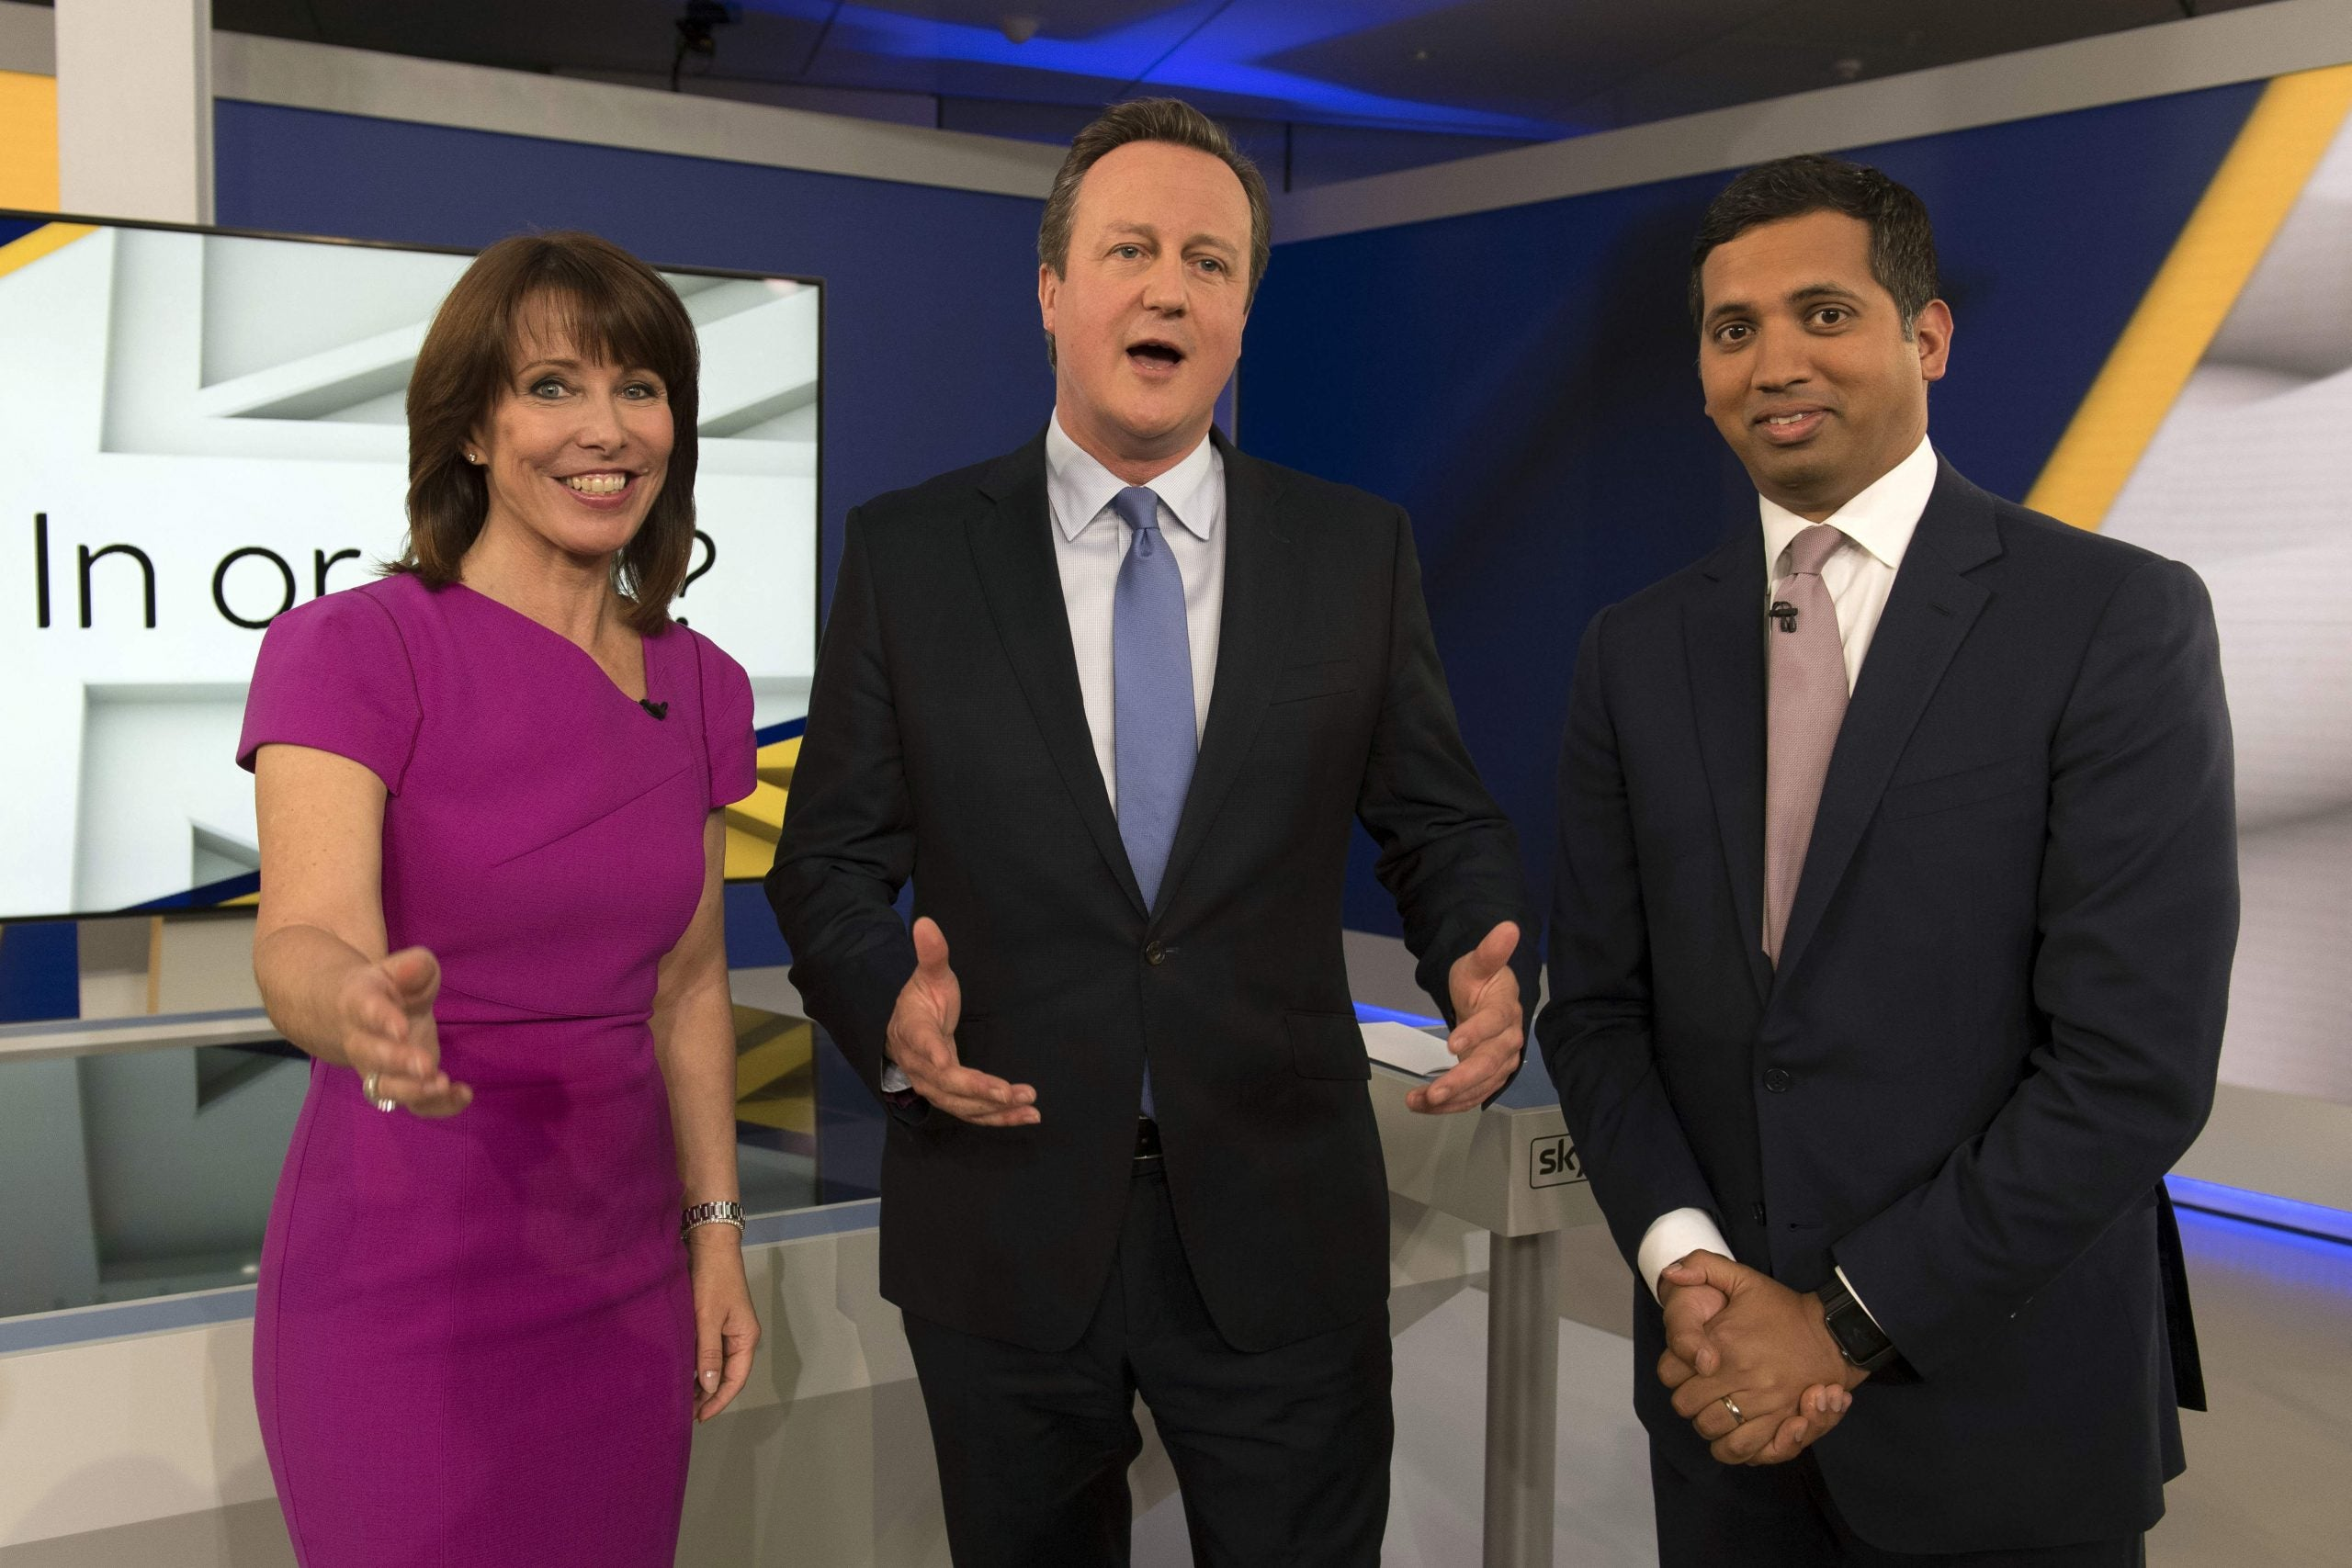 Broadcasters were biased during the EU referendum campaign - but not in the way you think